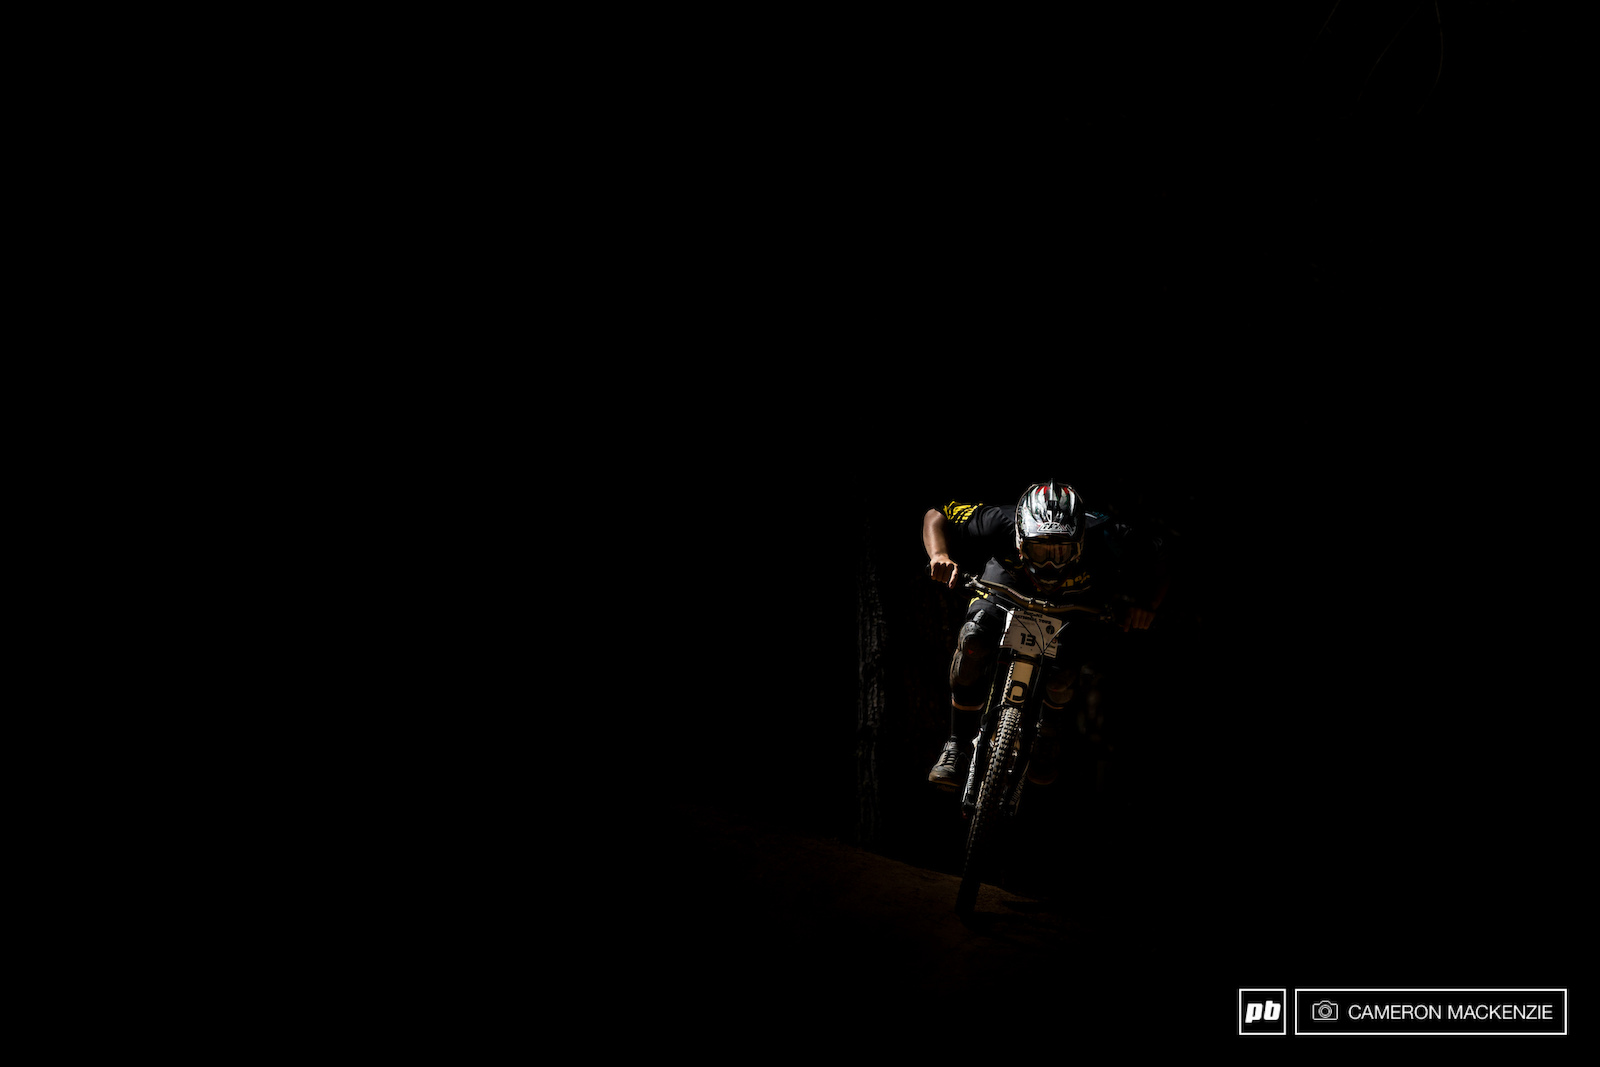 Liam Jackson putting the dark days of MTBNZ drama behind him and riding into the light.